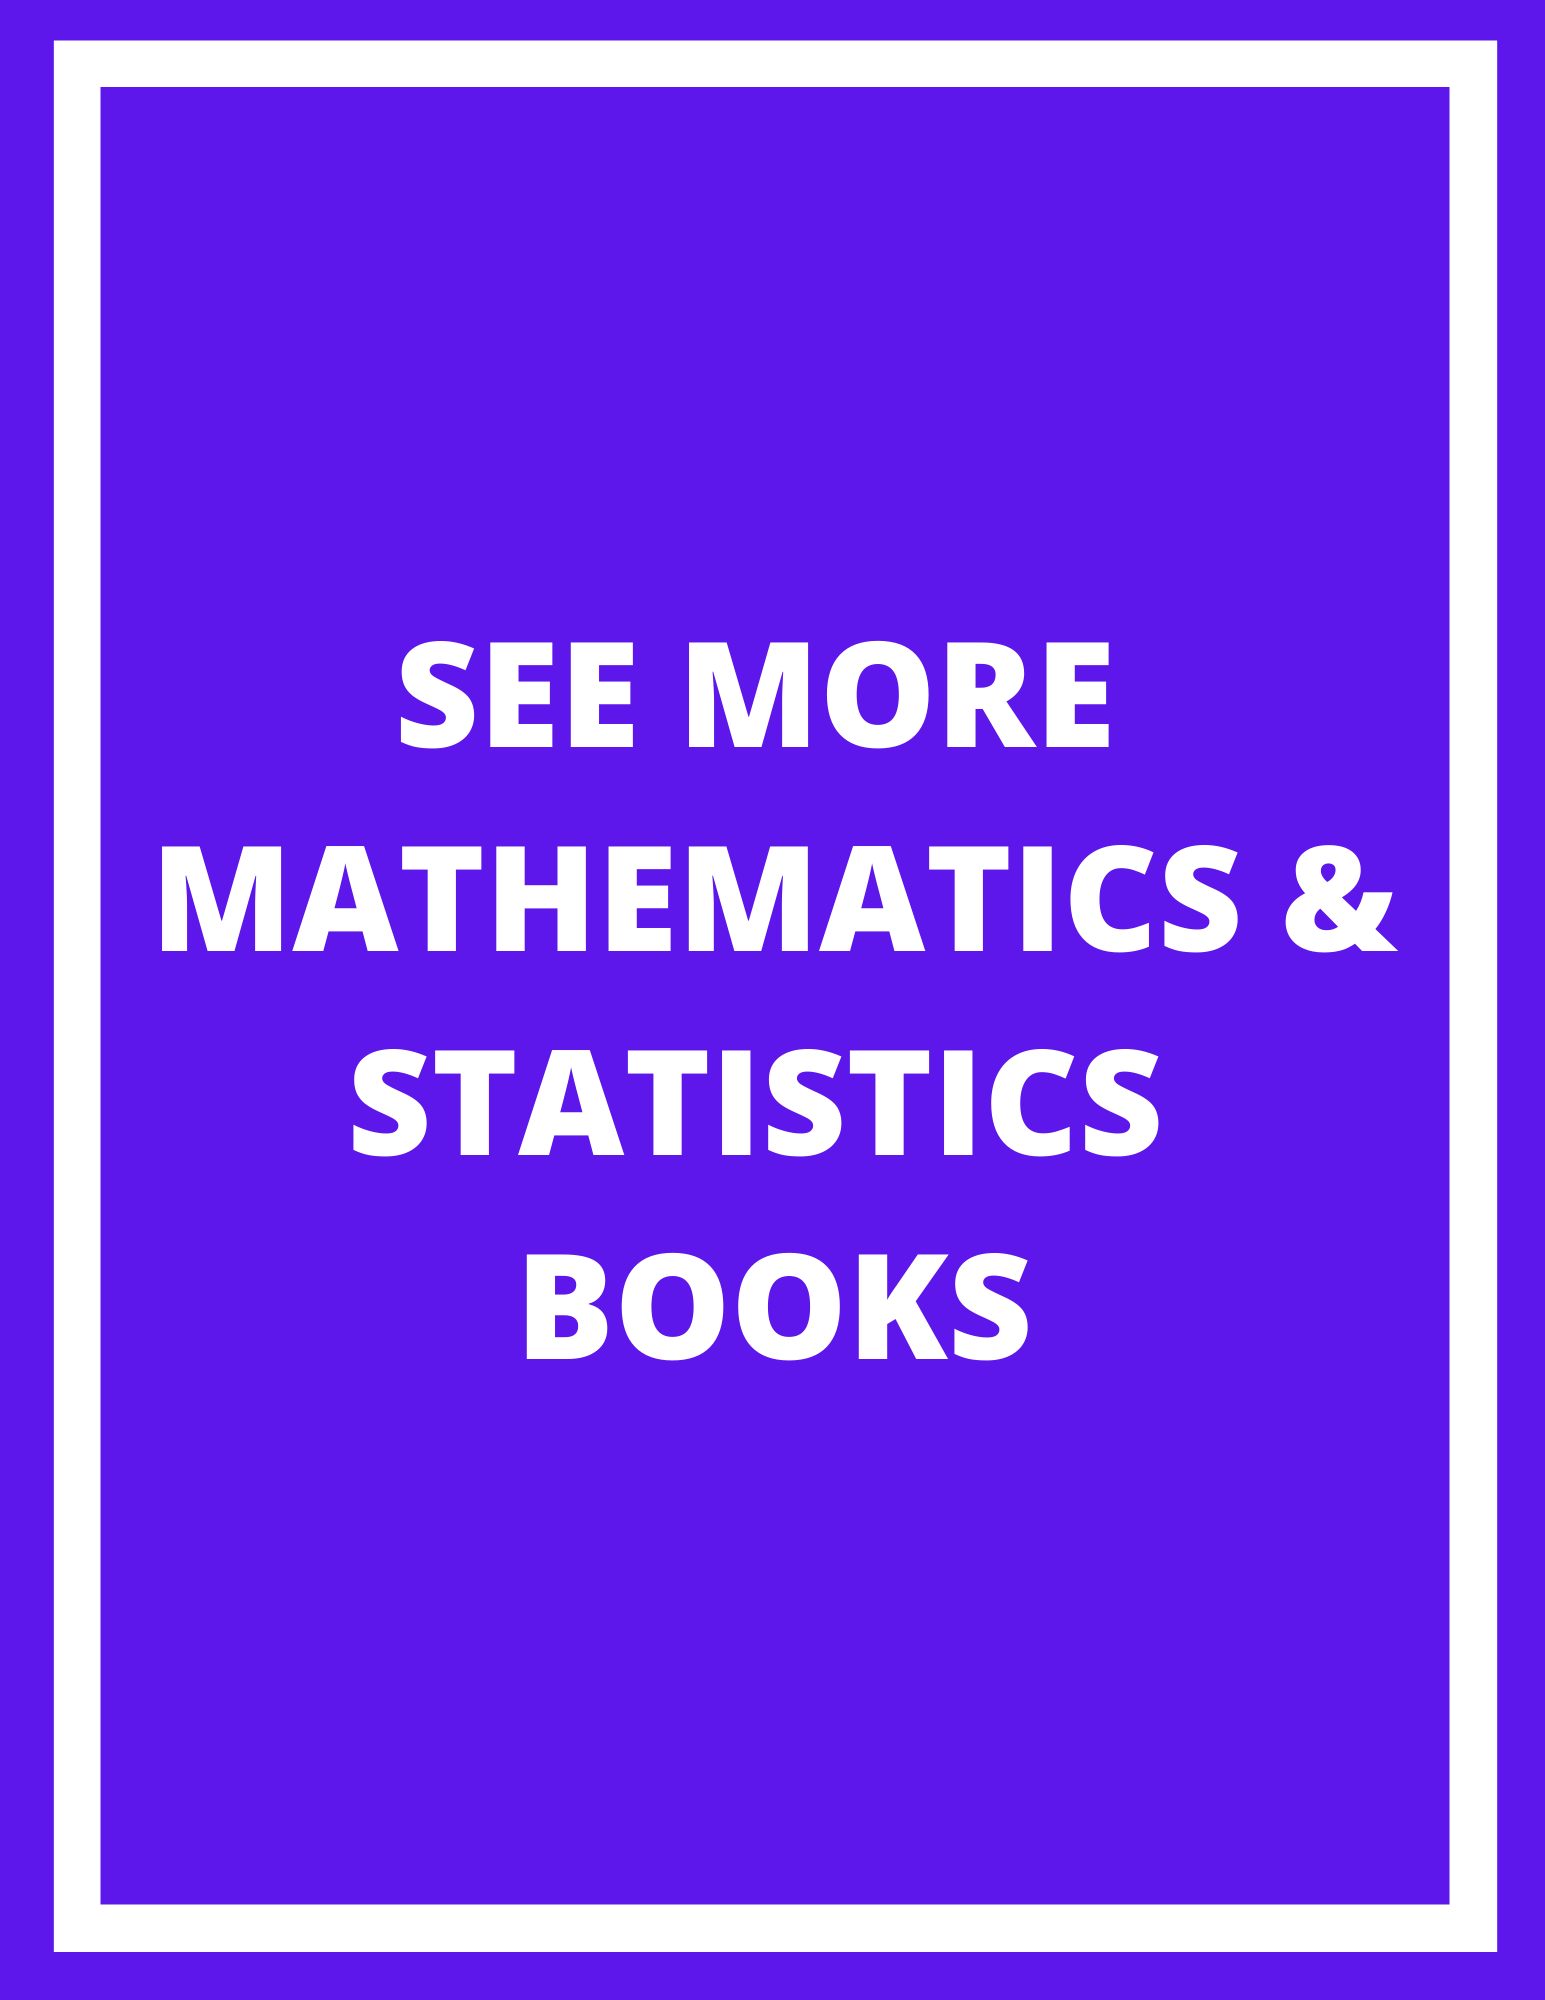 Link to see more mathematics and statistics books